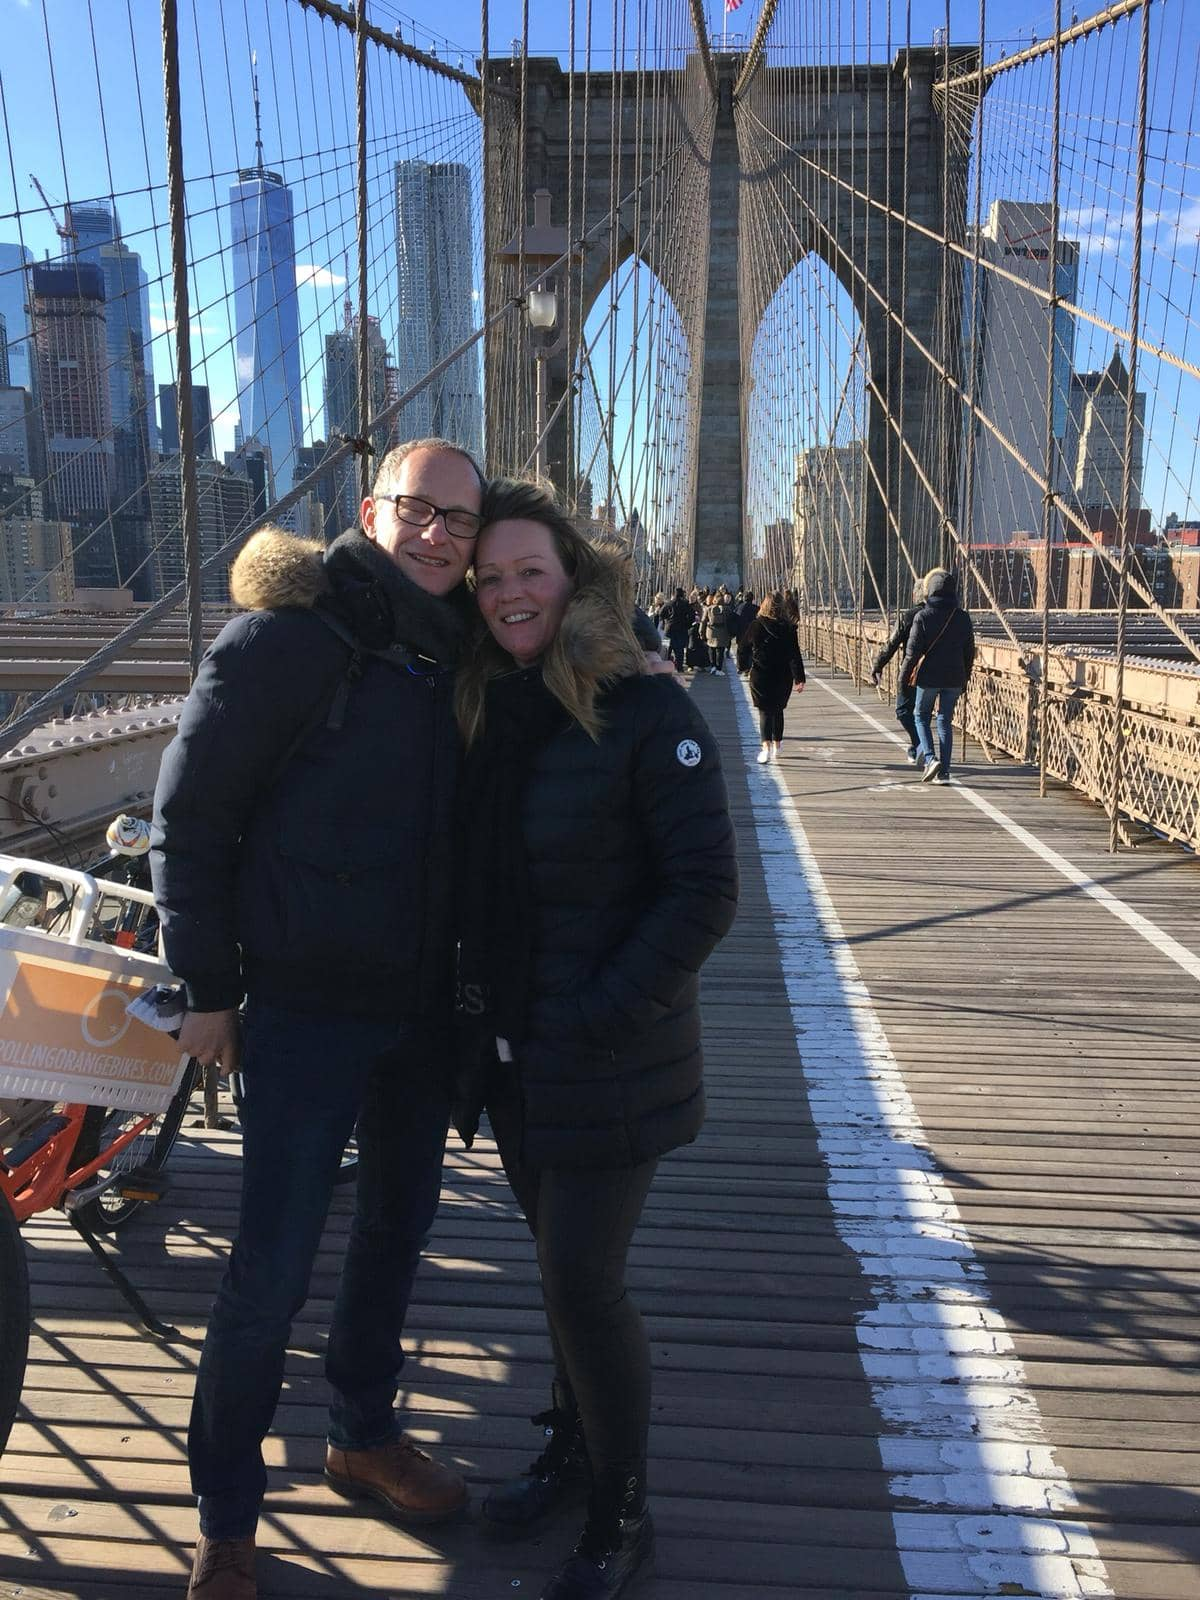 Vind en rejse til New York - Brooklyn Bridge